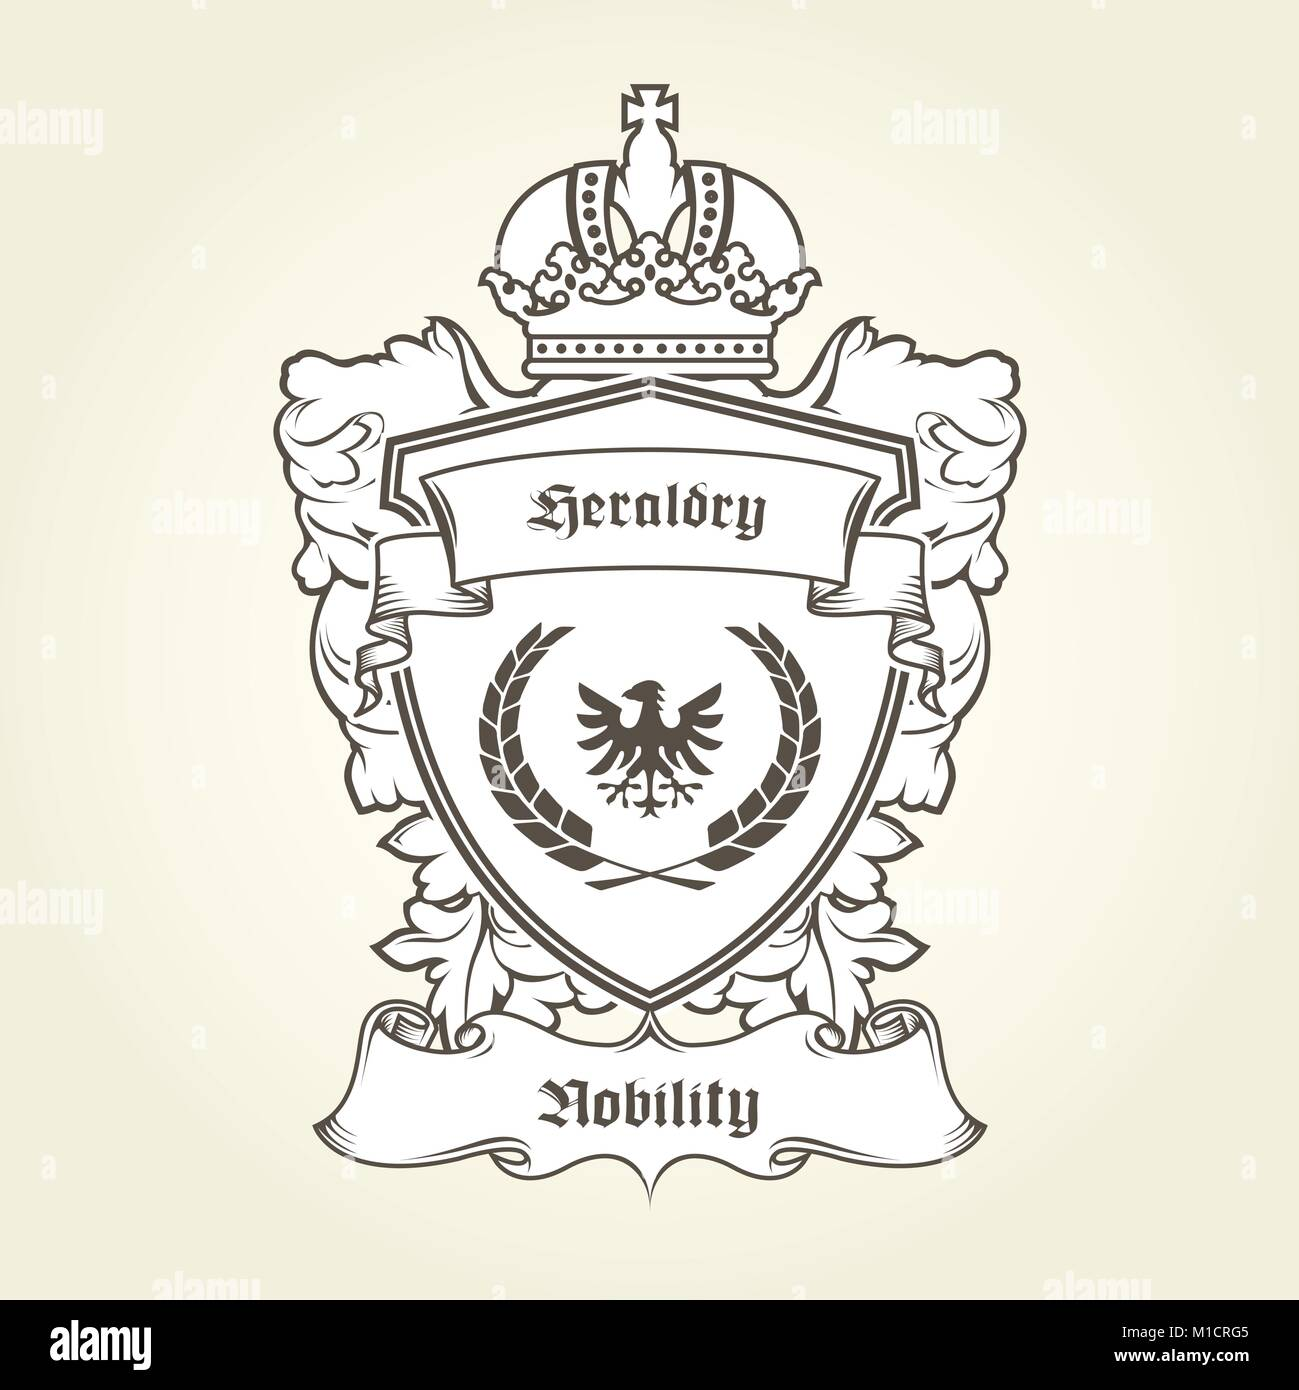 Royal Banner Of Arms Stock Photos & Royal Banner Of Arms Stock ...